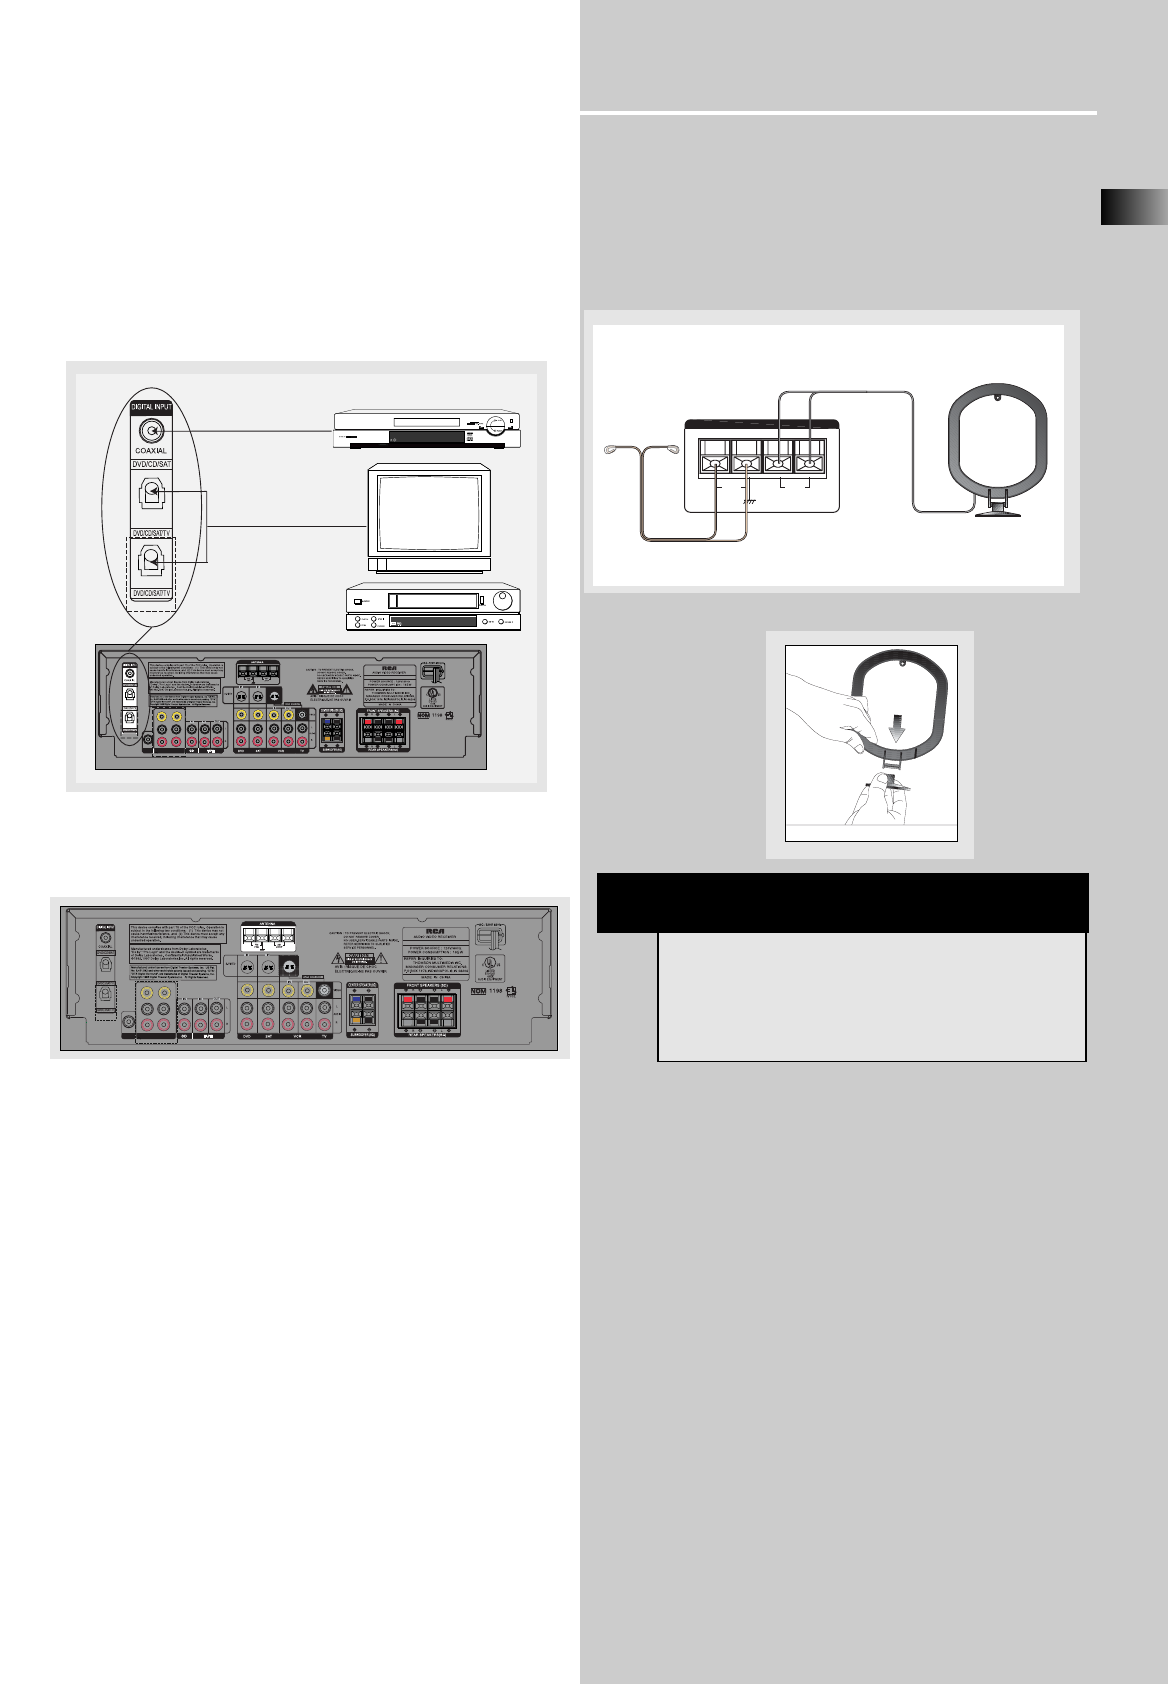 page 8 of rca stereo receiver rt2350 user guide manualsonline com rh audio manualsonline com Instruction Manual Example Manuals in PDF